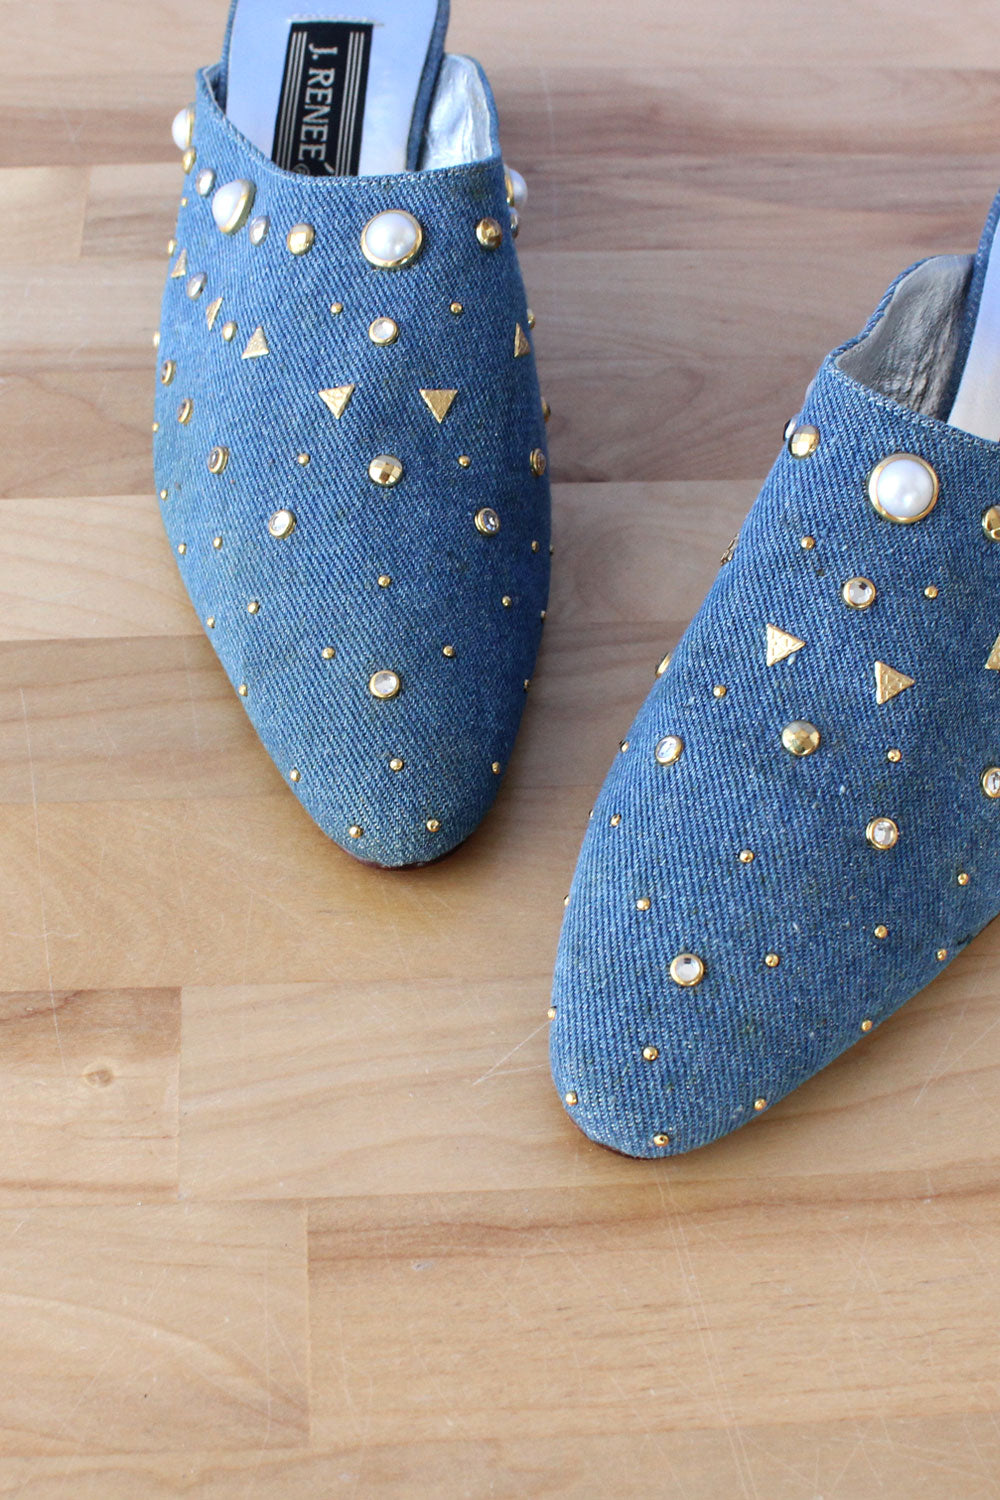 Bedazzled Denim Mules 8-9